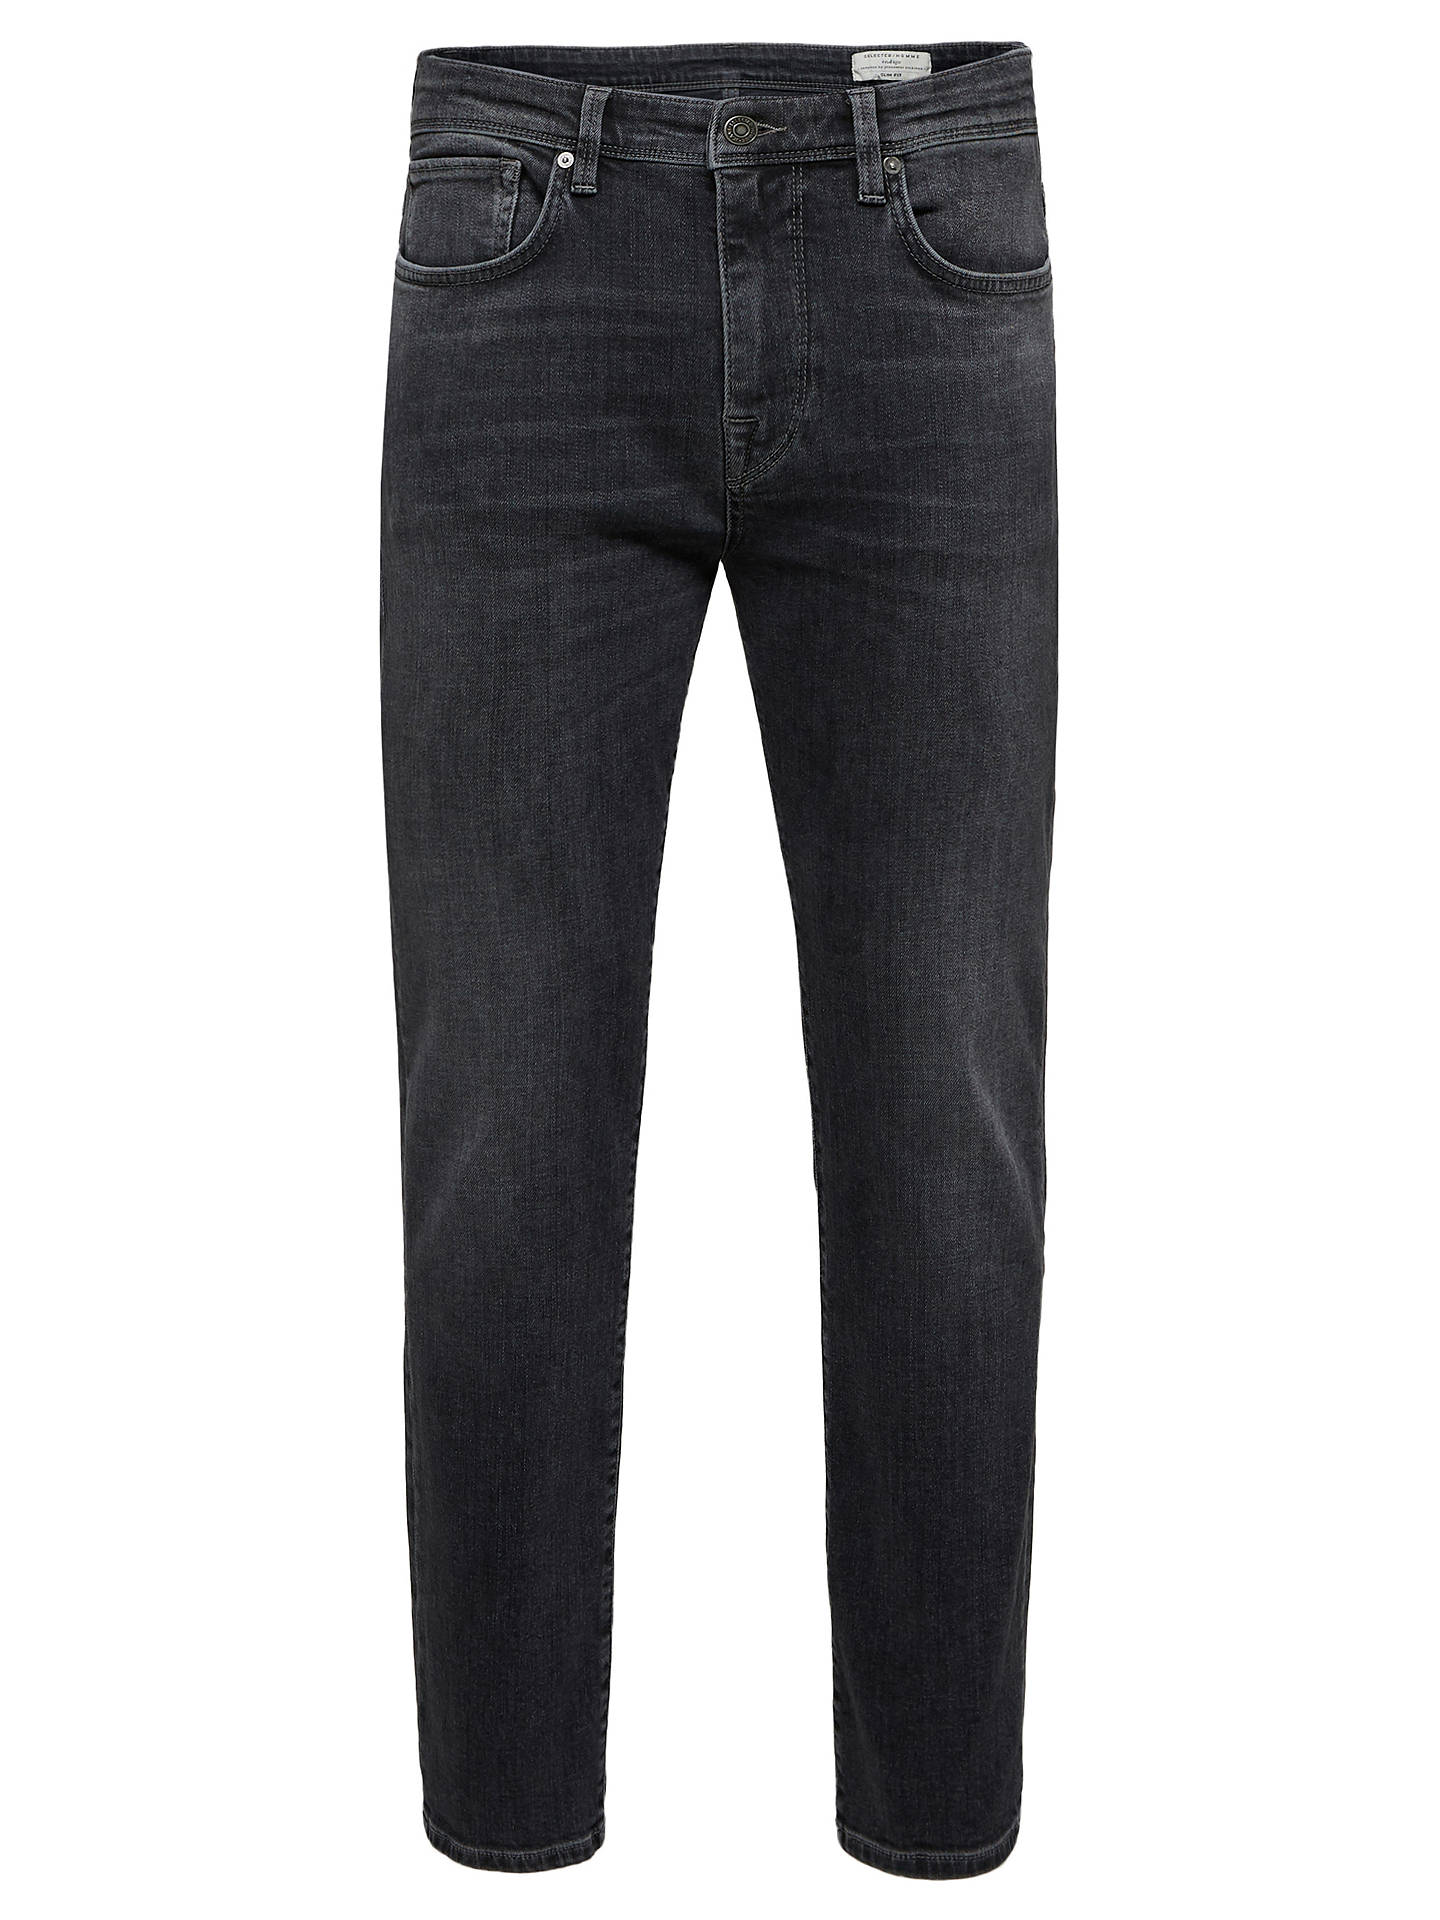 BuySelected Homme Leon Fit Denim Jeans, Grey, 30S Online at johnlewis.com